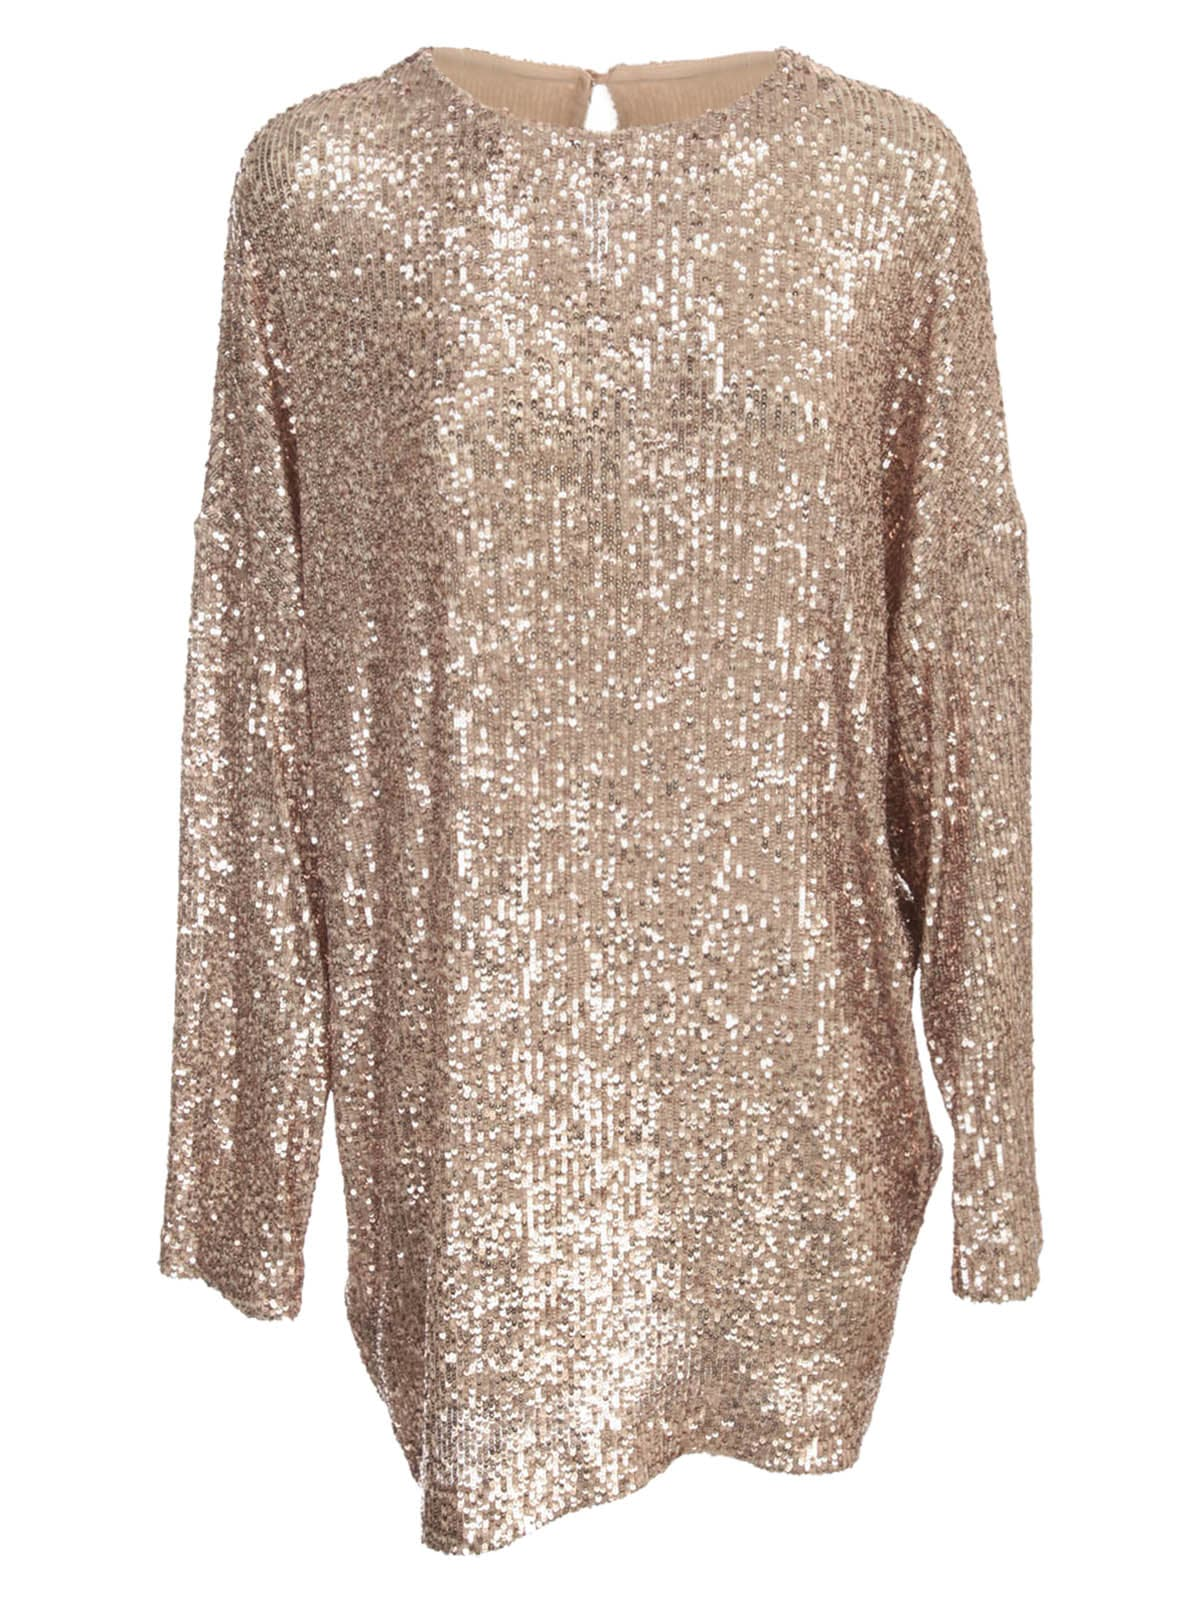 Buy In The Mood For Love Soft Sequin Mini Dress online, shop In The Mood For Love with free shipping